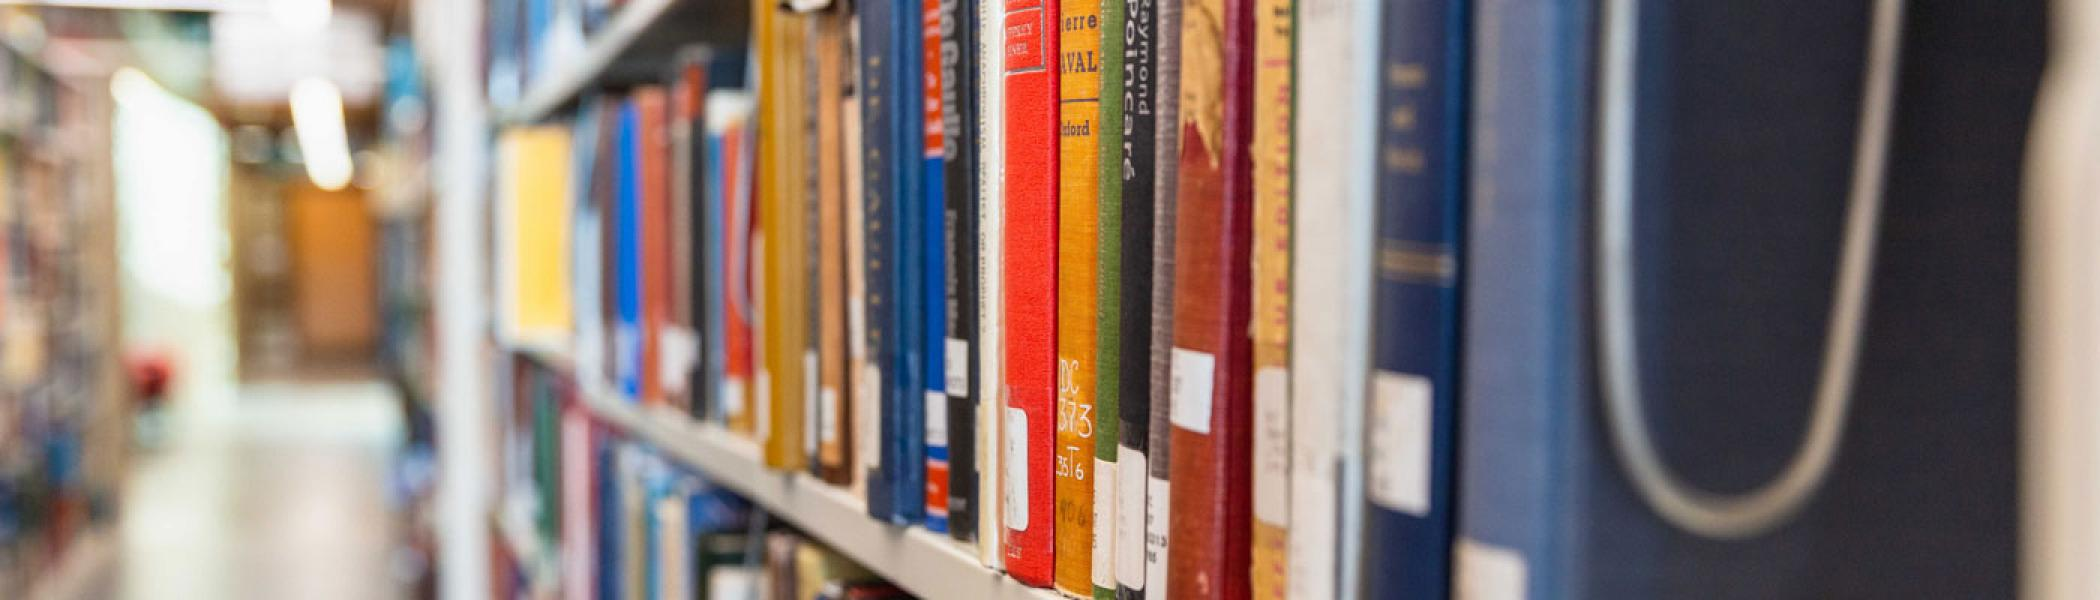 Books on the shelf in Bata library